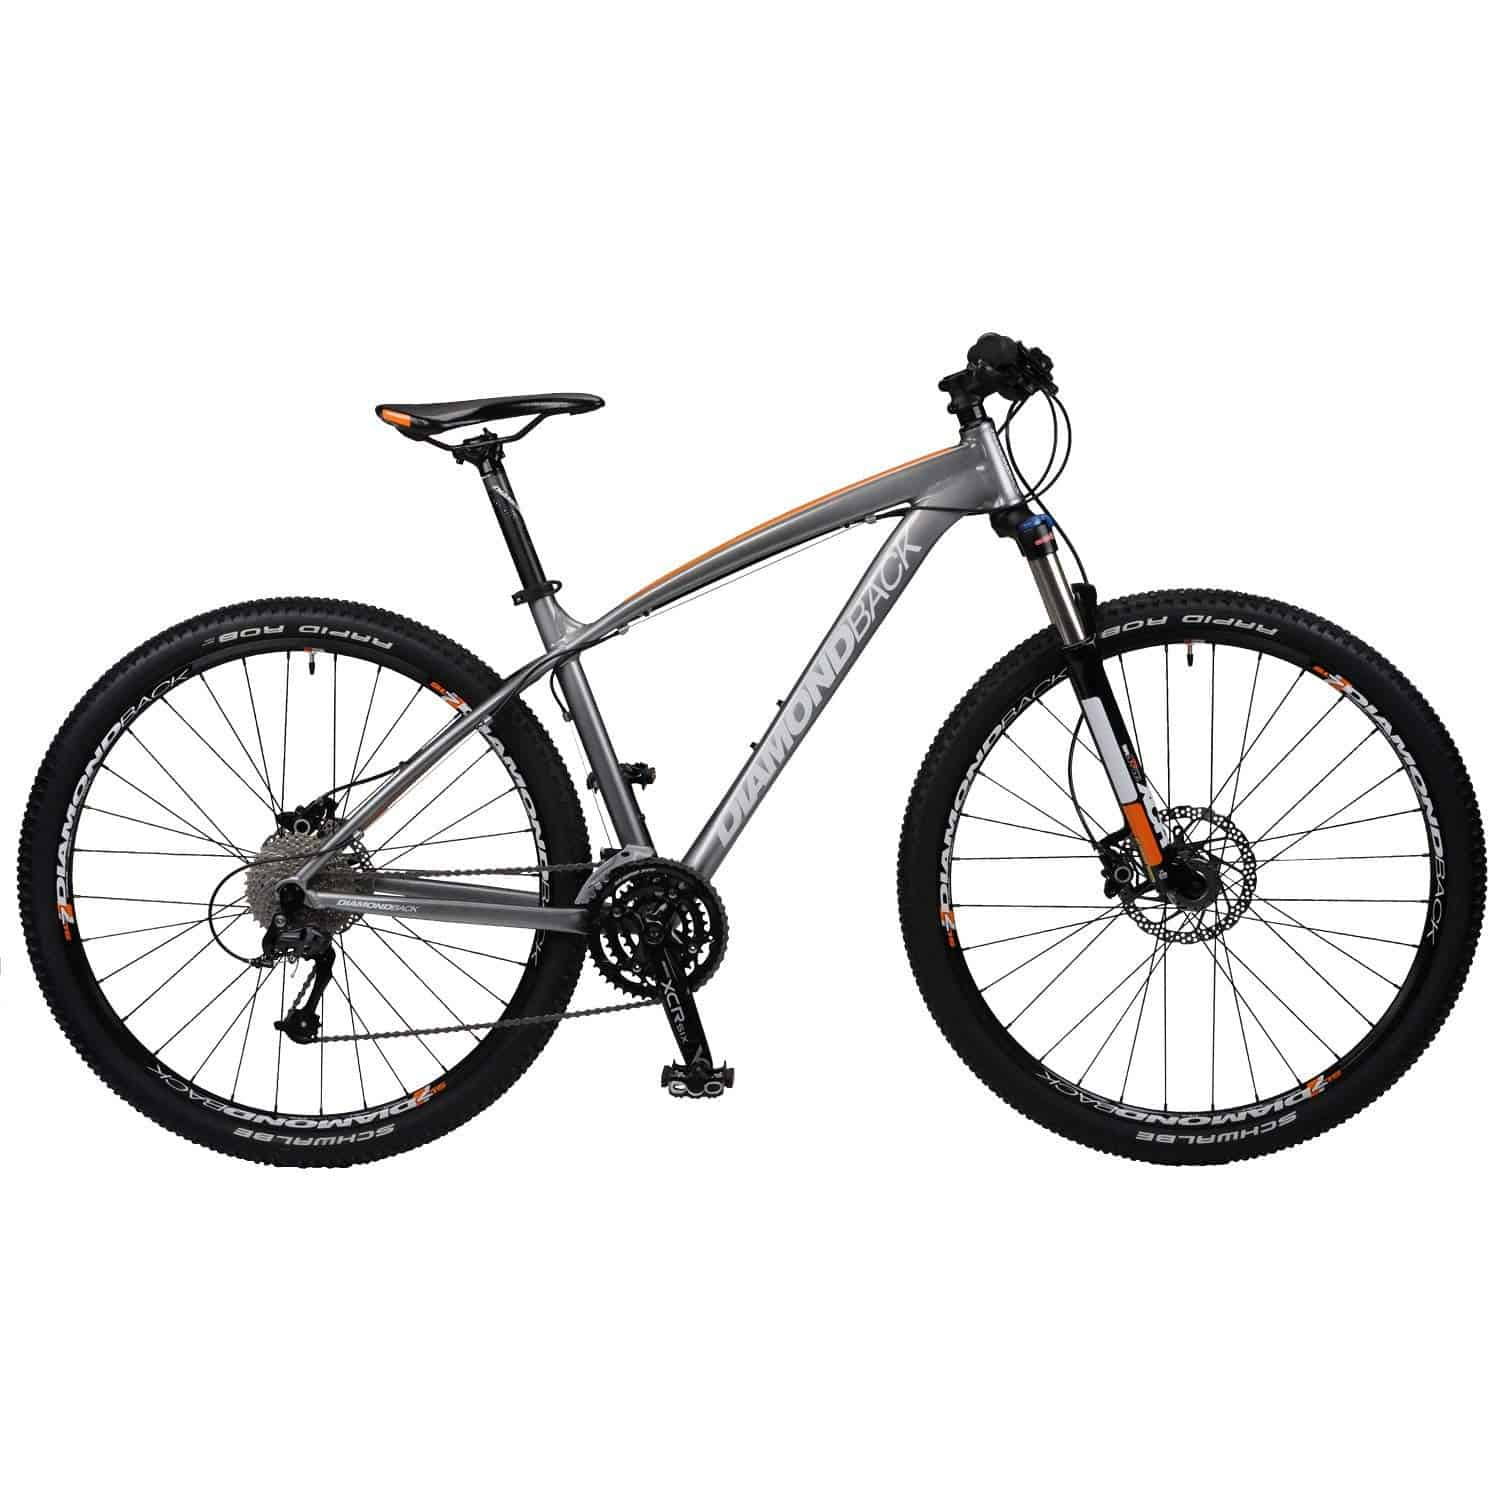 10 Best Cheap Mountain Bikes Of 2019 Top Rated Mtb Reviews